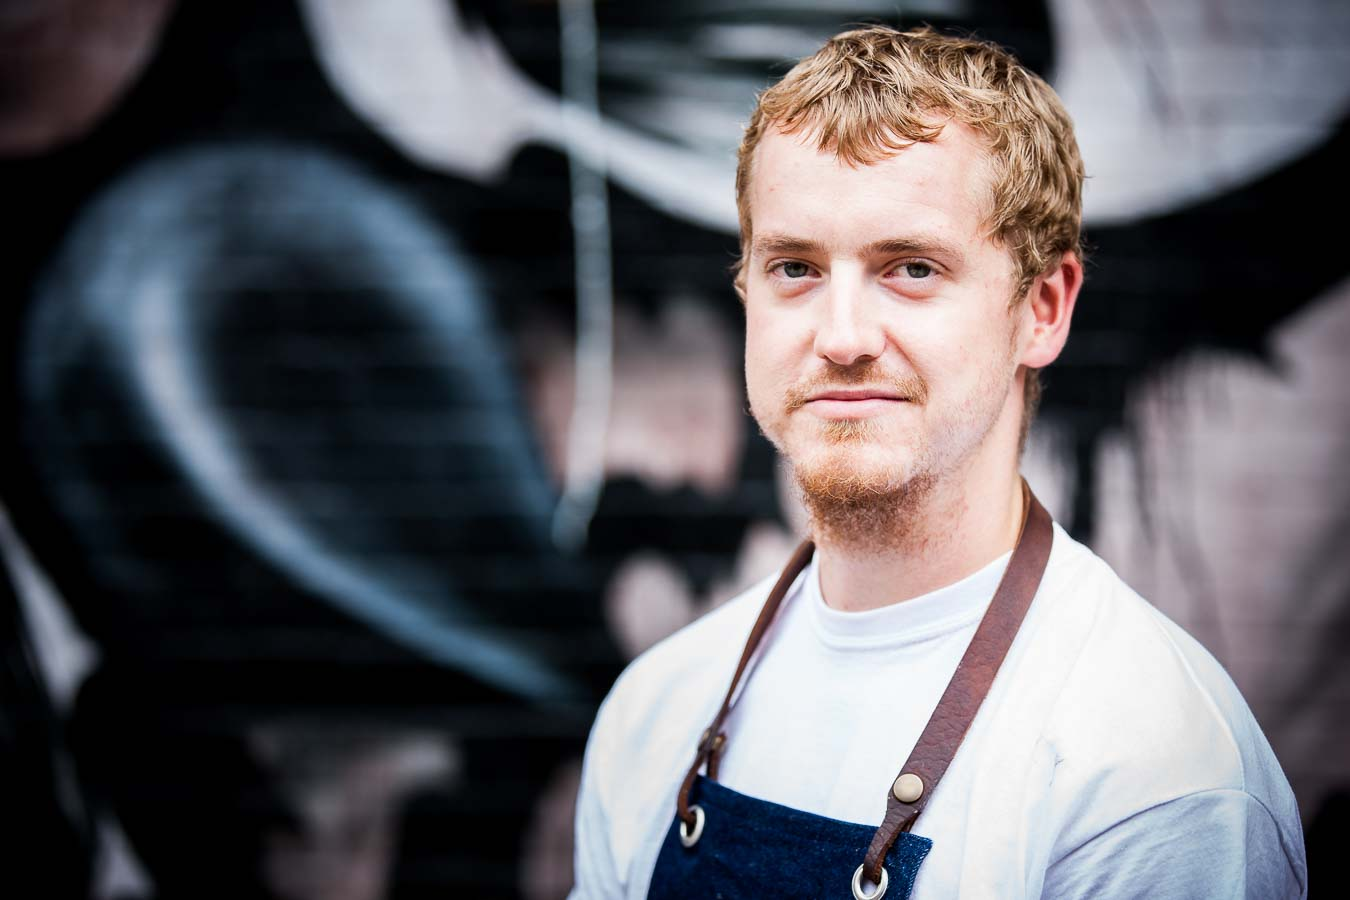 Environmental portrait of chef Simon Woodrow, wearing a white t-shirt and denim apron, with a graffiti wall, out of focus, behind him